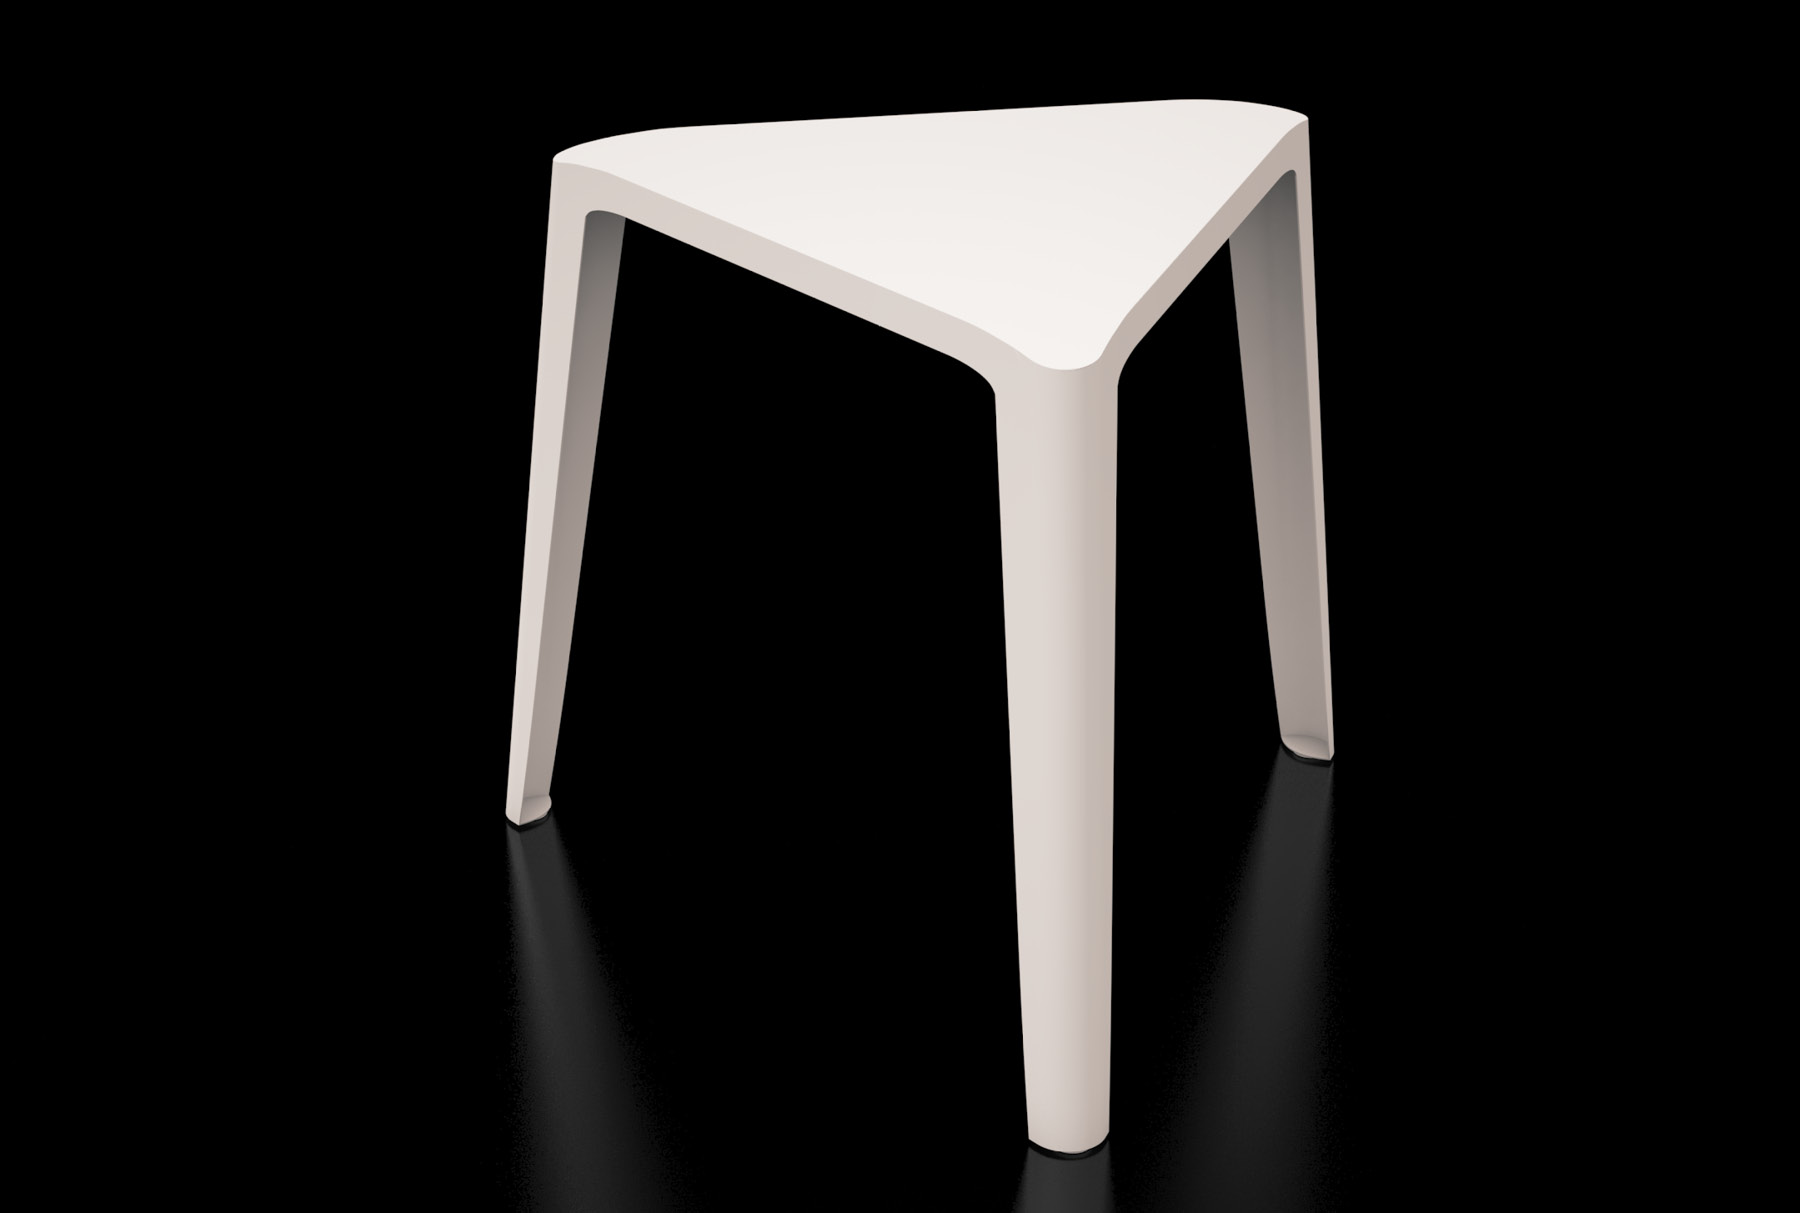 Arktura Clic Low Stool in Cream White